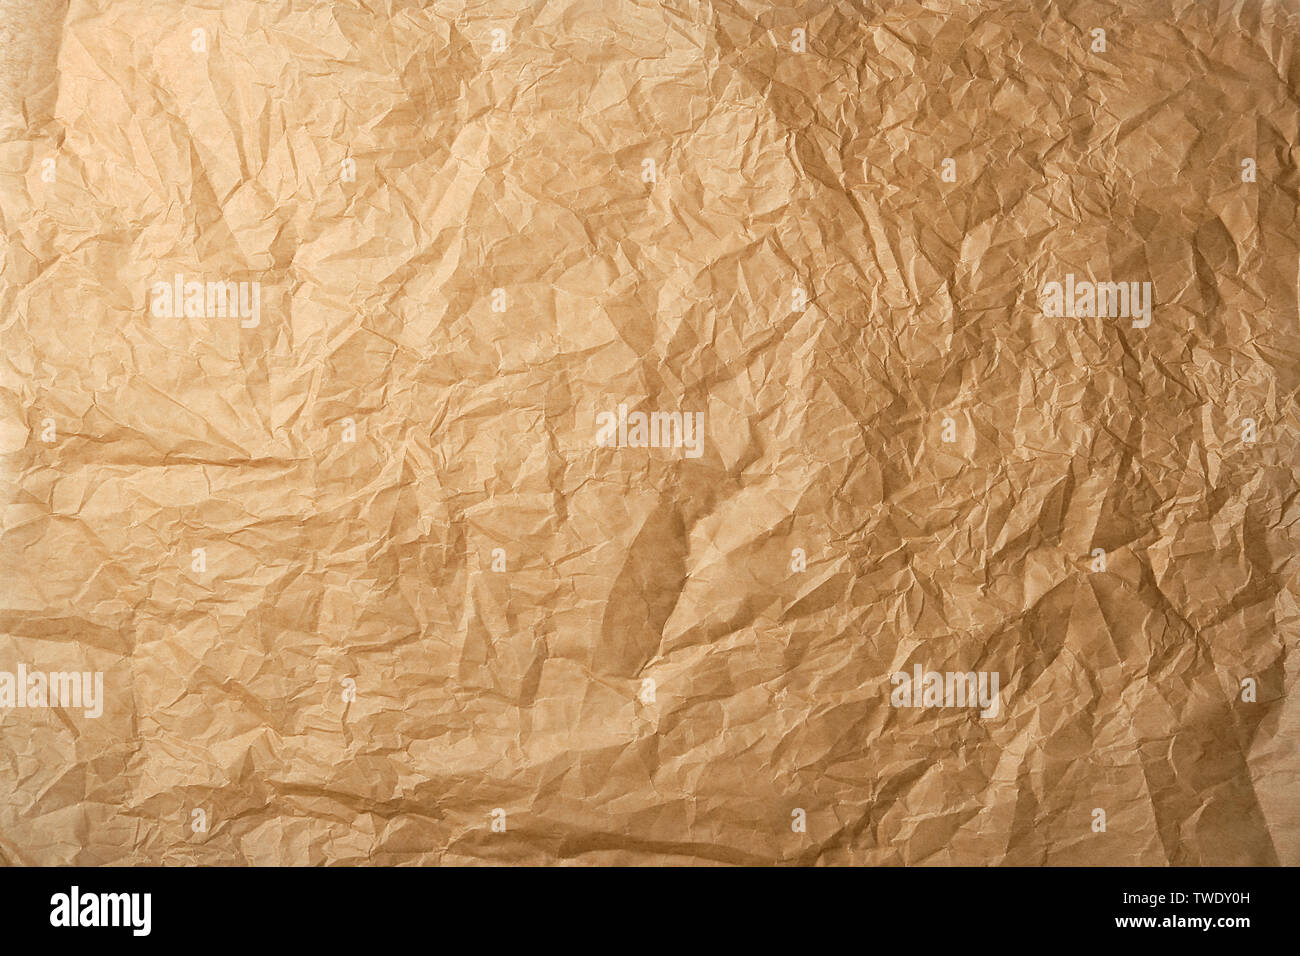 crumpled brown baking parchment paper, full frame - Stock Image